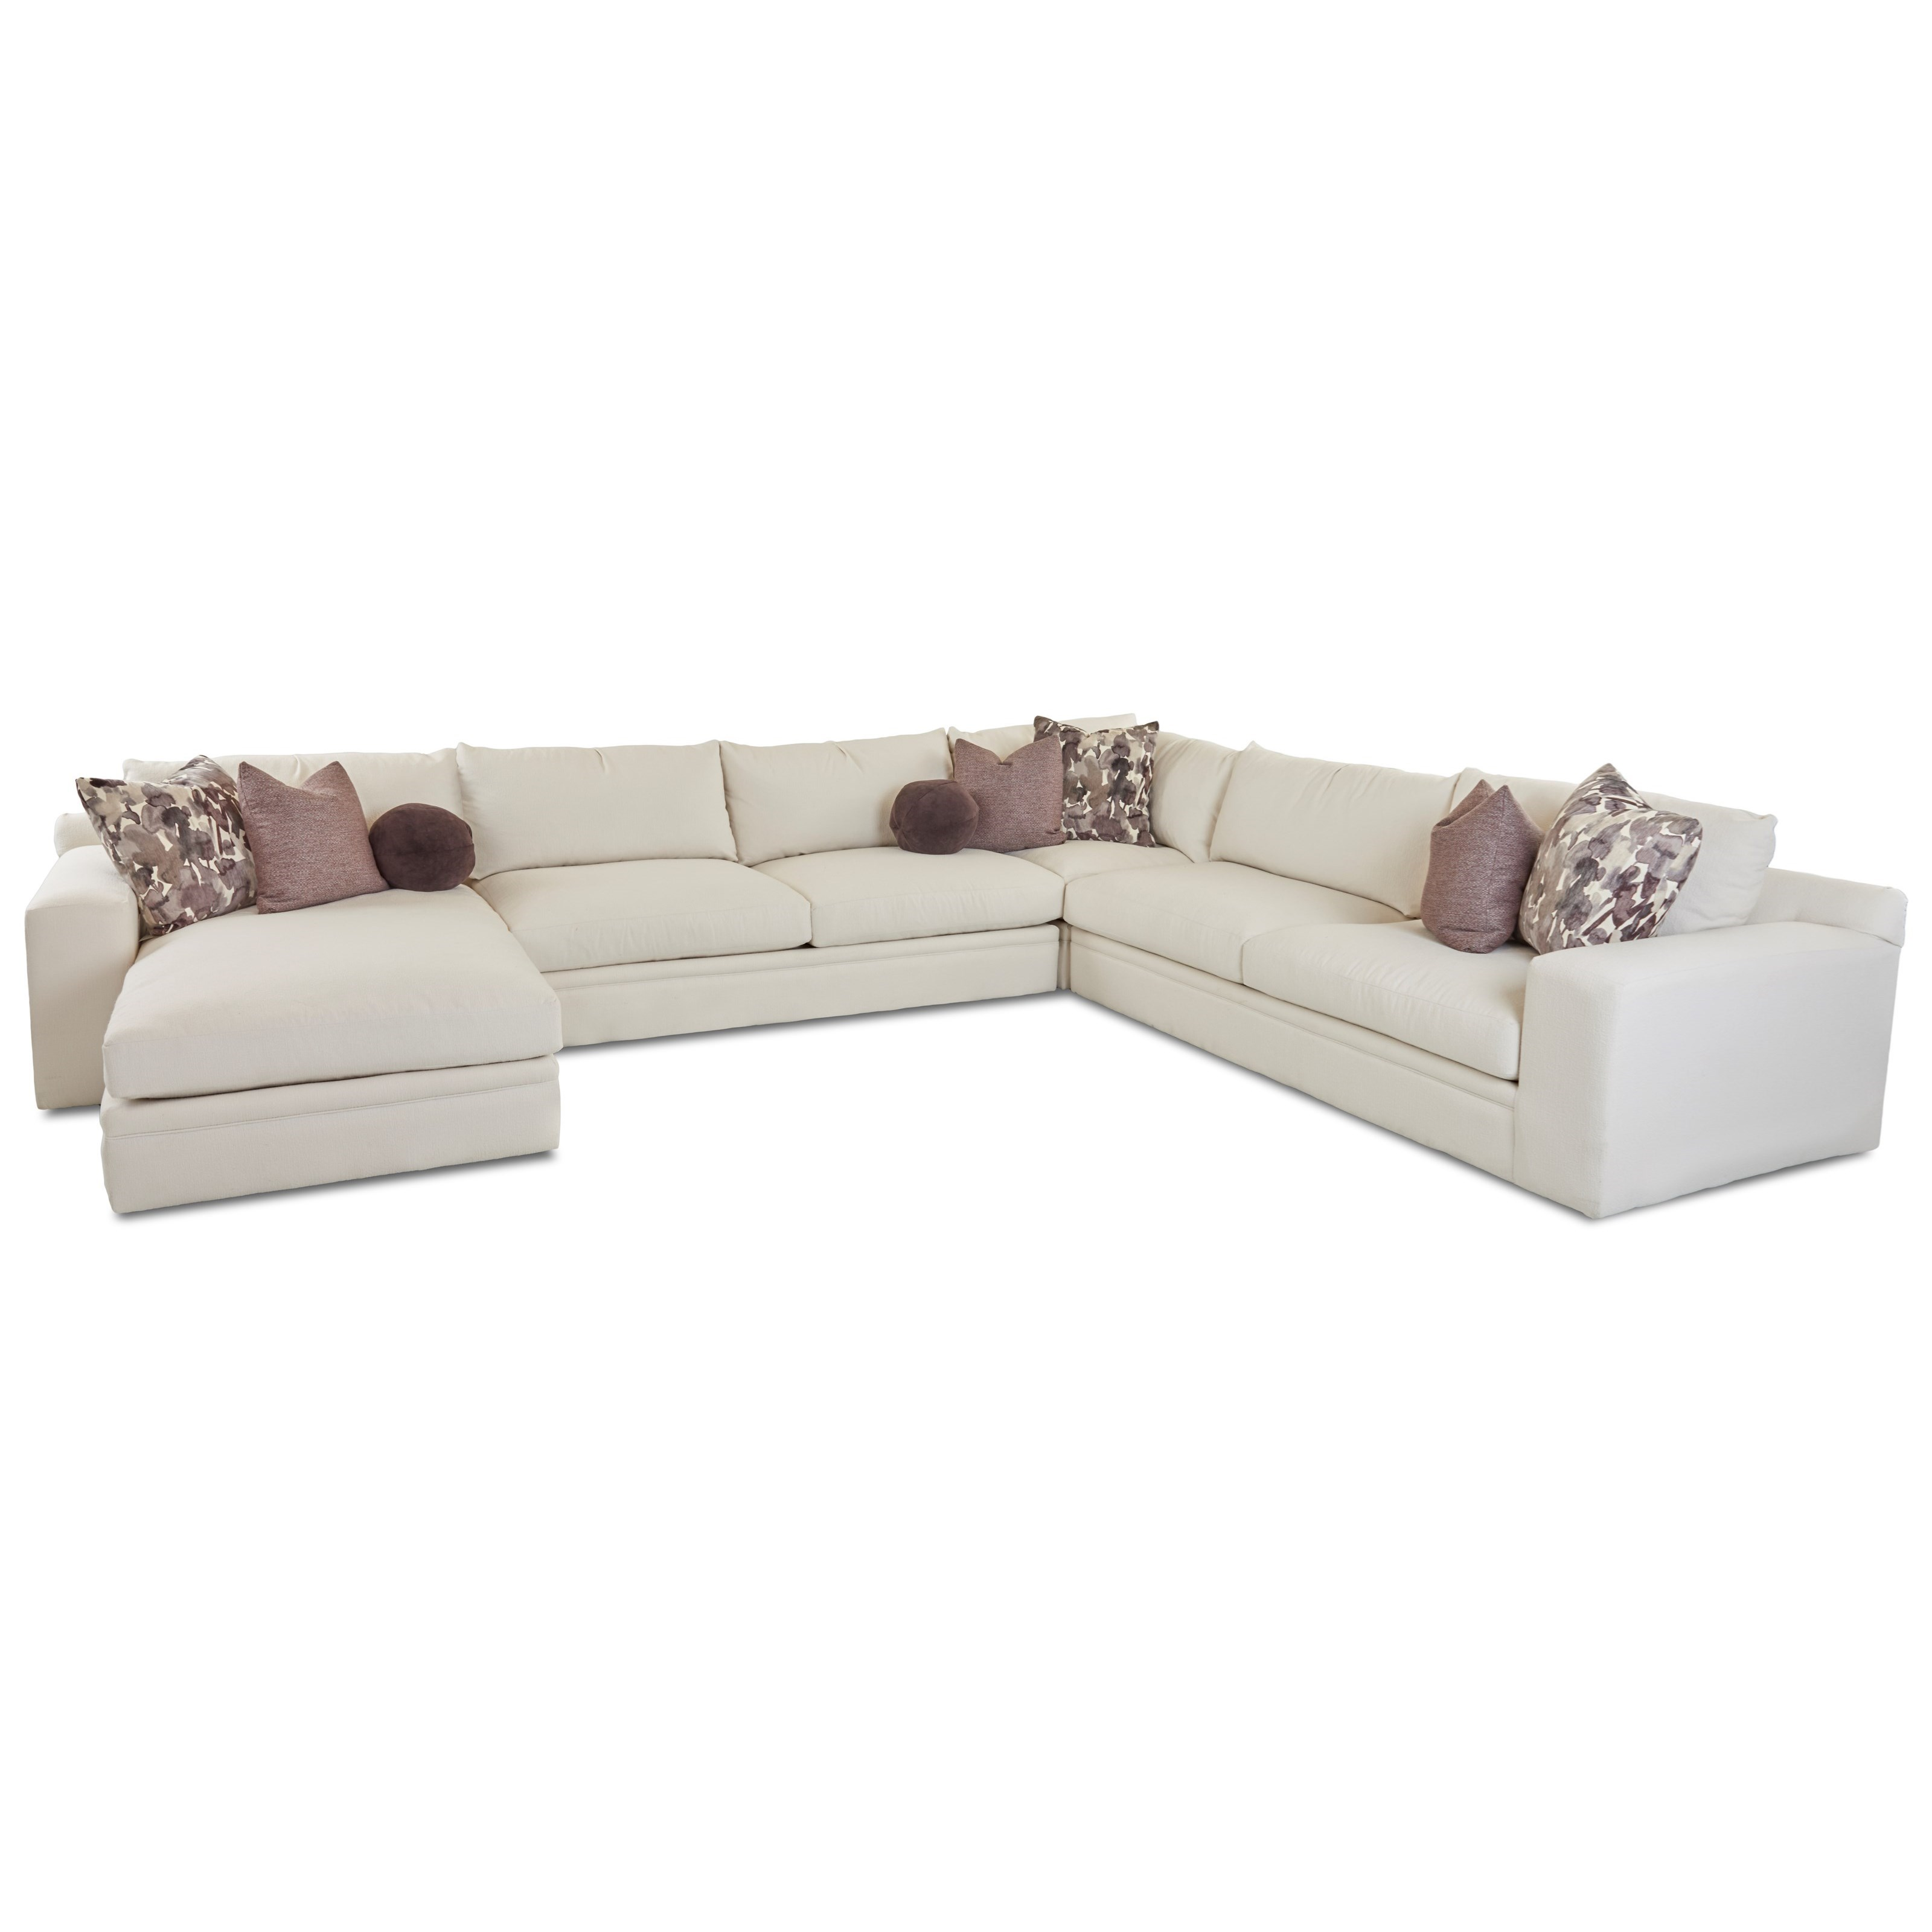 Casa Mesa 4 Pc Sectional Sofa w/ LAF Chaise by Klaussner at Johnny Janosik